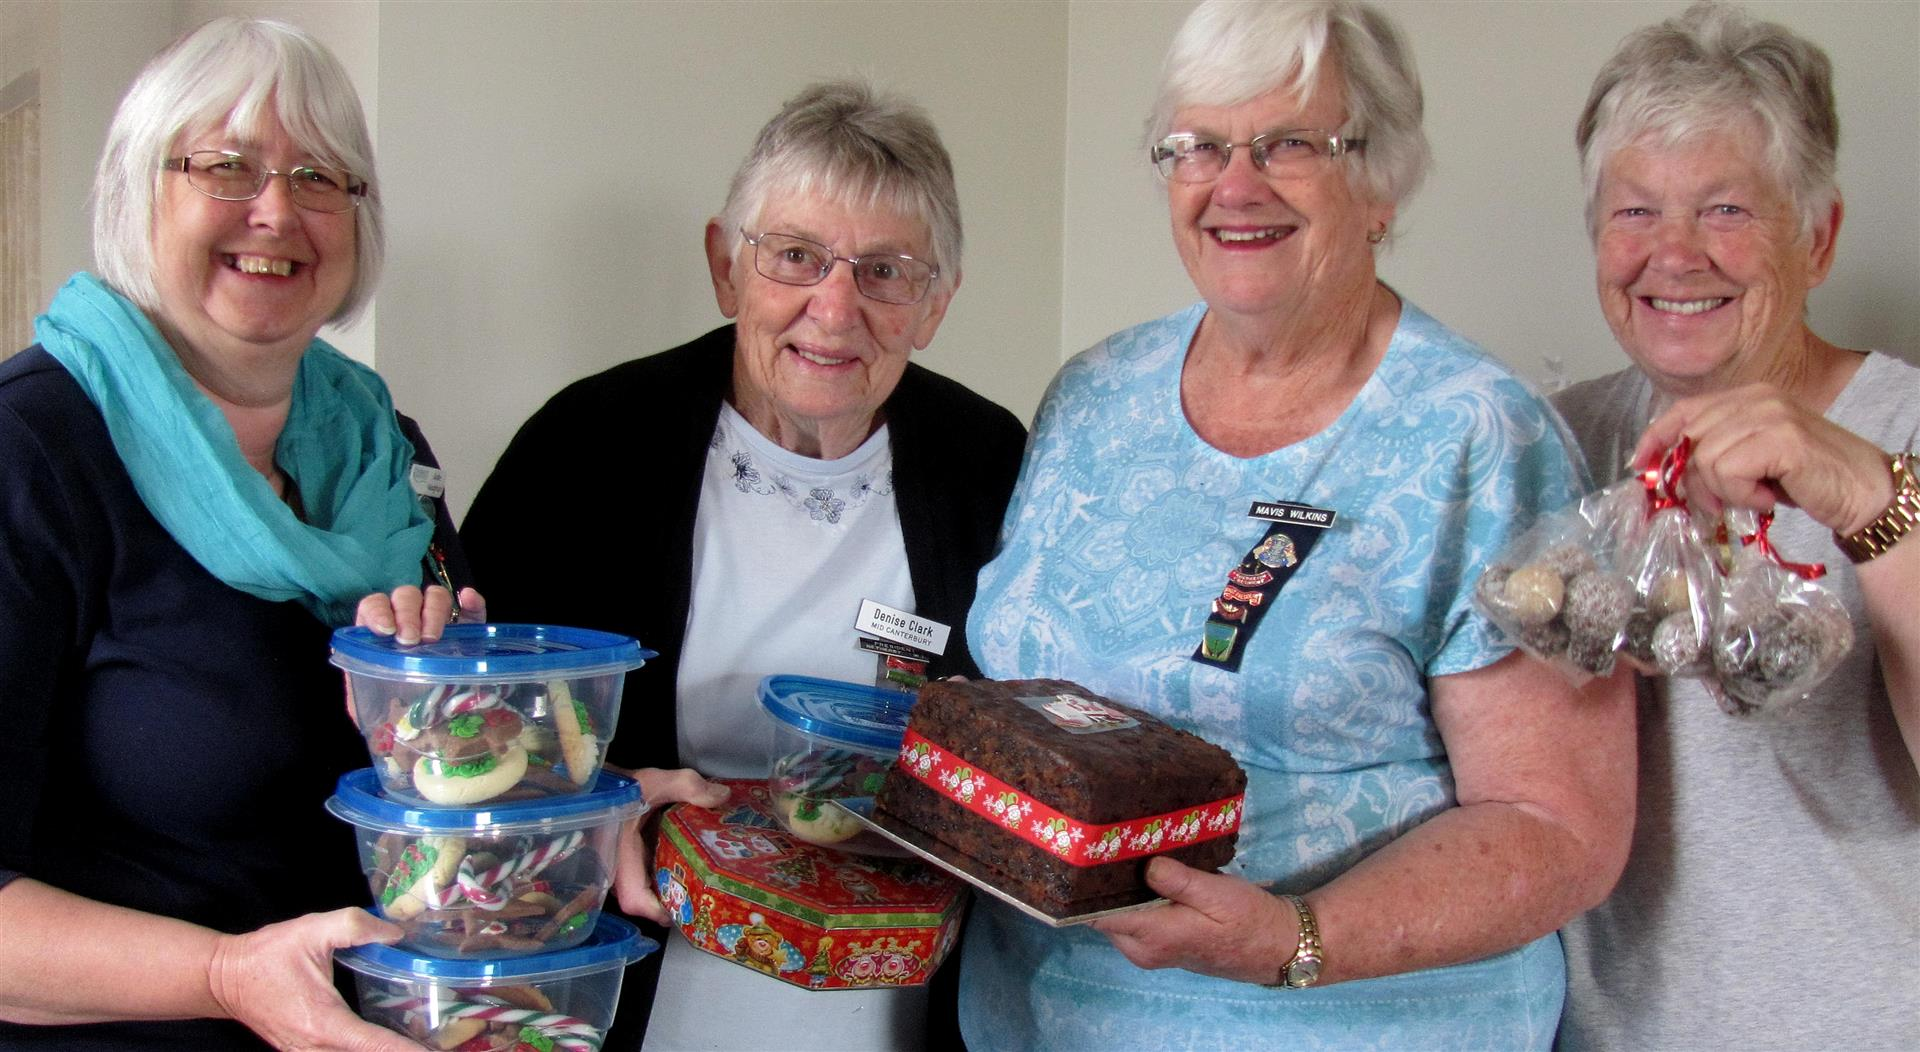 Mid Canterbury Federation of Women's Institutes members, from left, Jude  Vaughan, Denise Clark, Mavis Wilkins and Jeanette Cuthbertson want to give farming families dealing with M. bovis a bit of Christmas cheer. Photo: Toni Williams